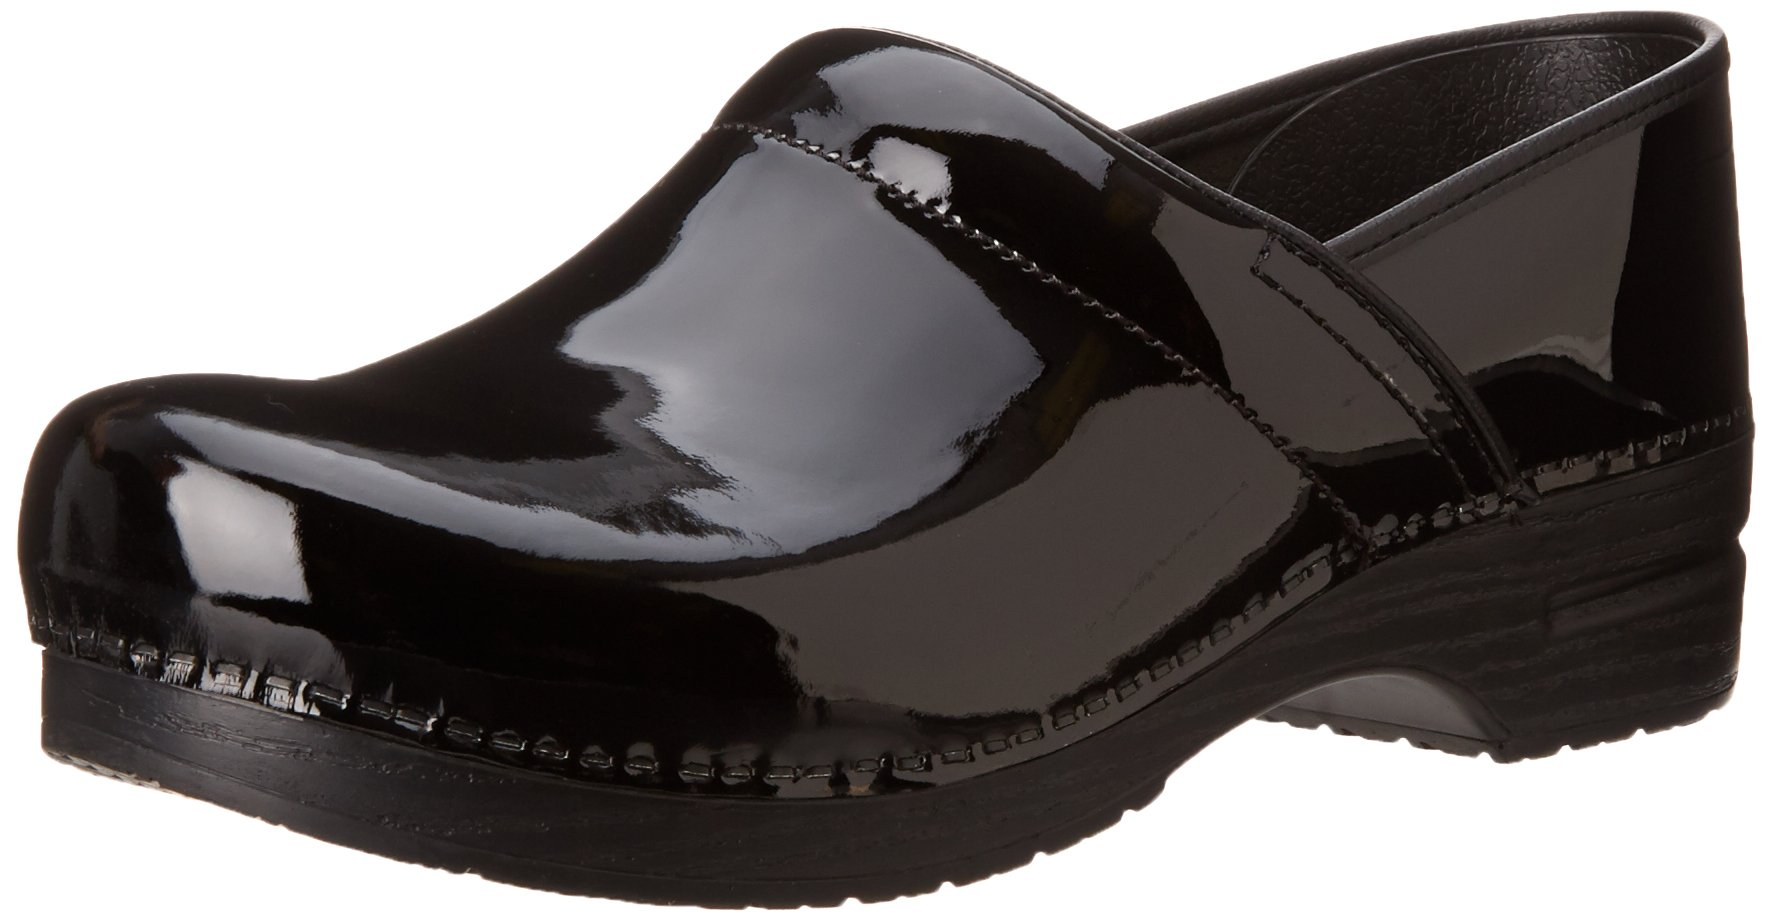 Dansko Men's Professional Patent Leather Men's Black Patent Leather Clog/Mule 45 (US Men's 11.5-12) Regular by Dansko